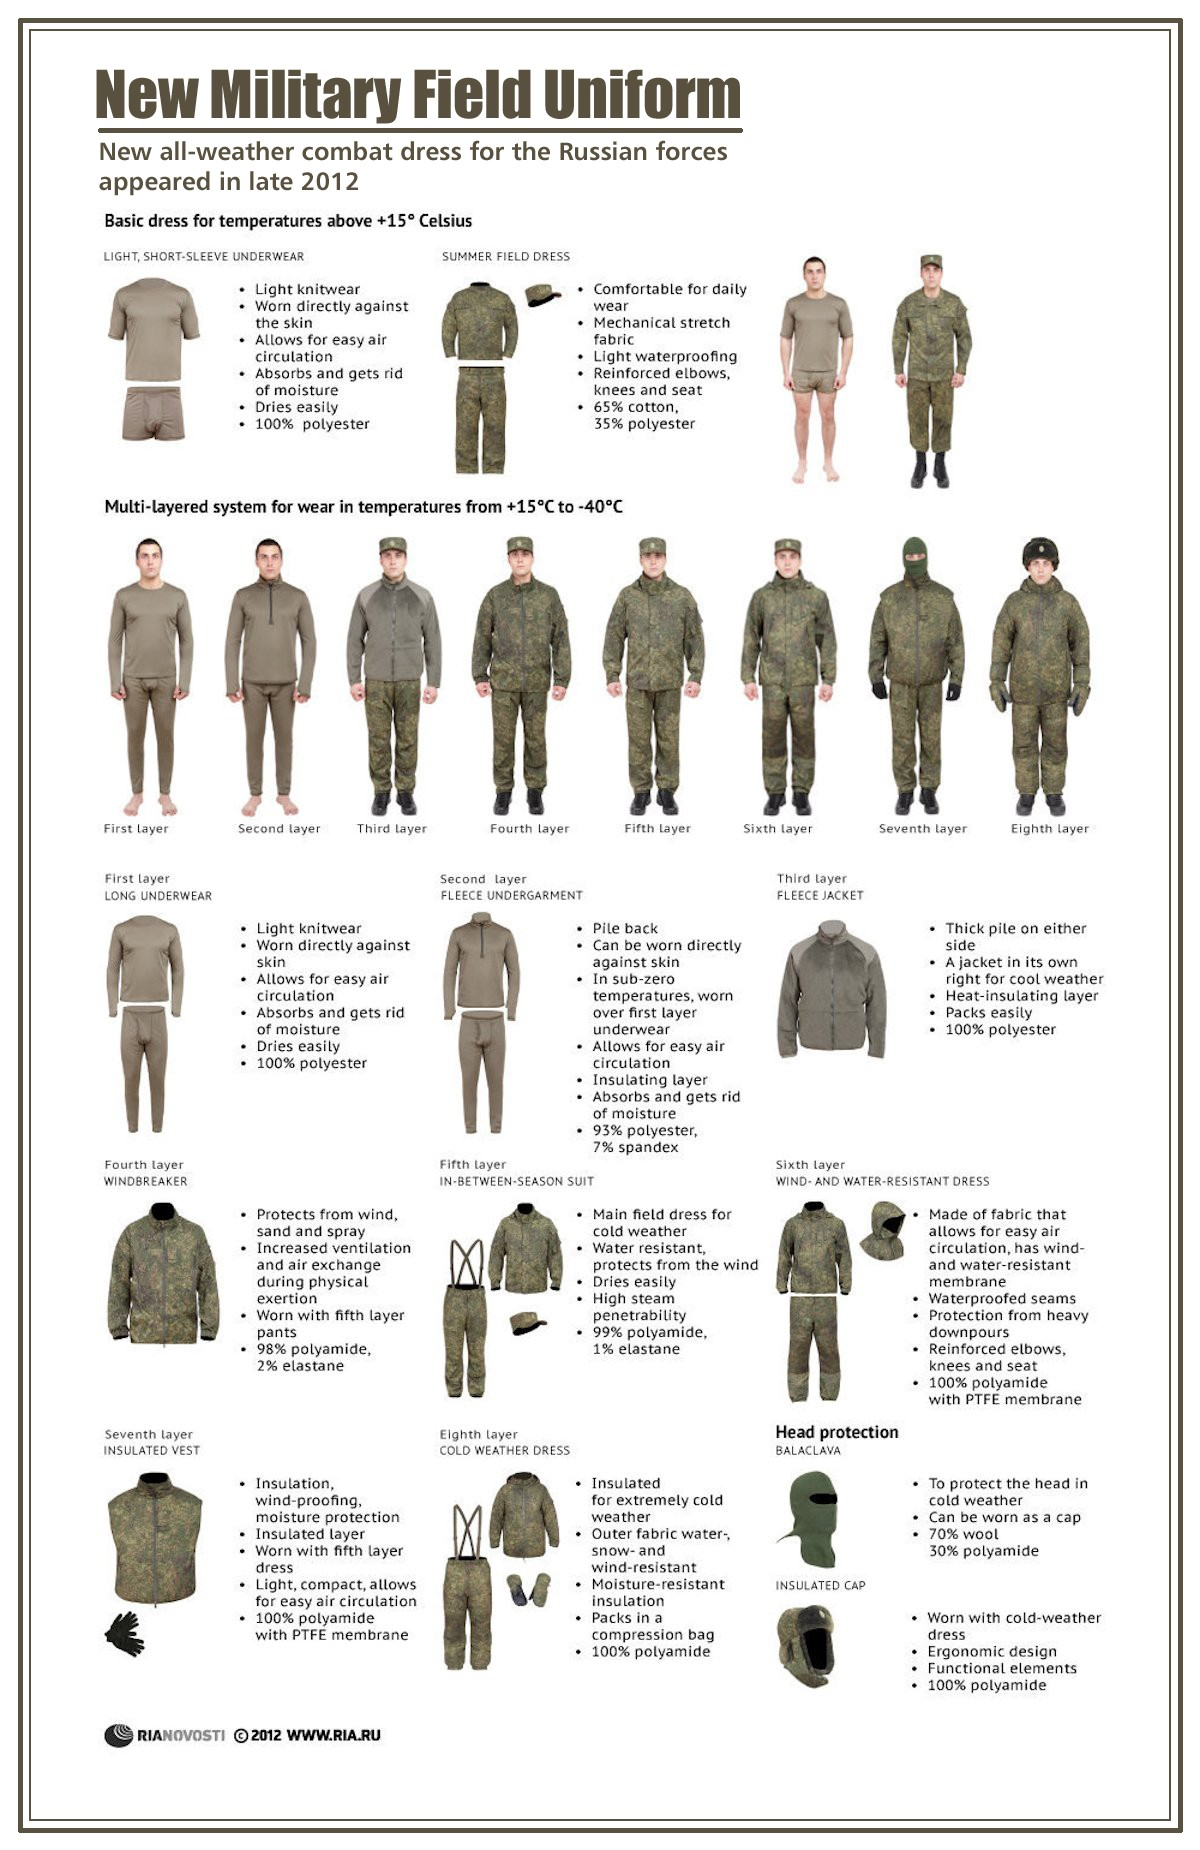 00 RIA-Novosti Infographics. New Military Field Uniform. 2012